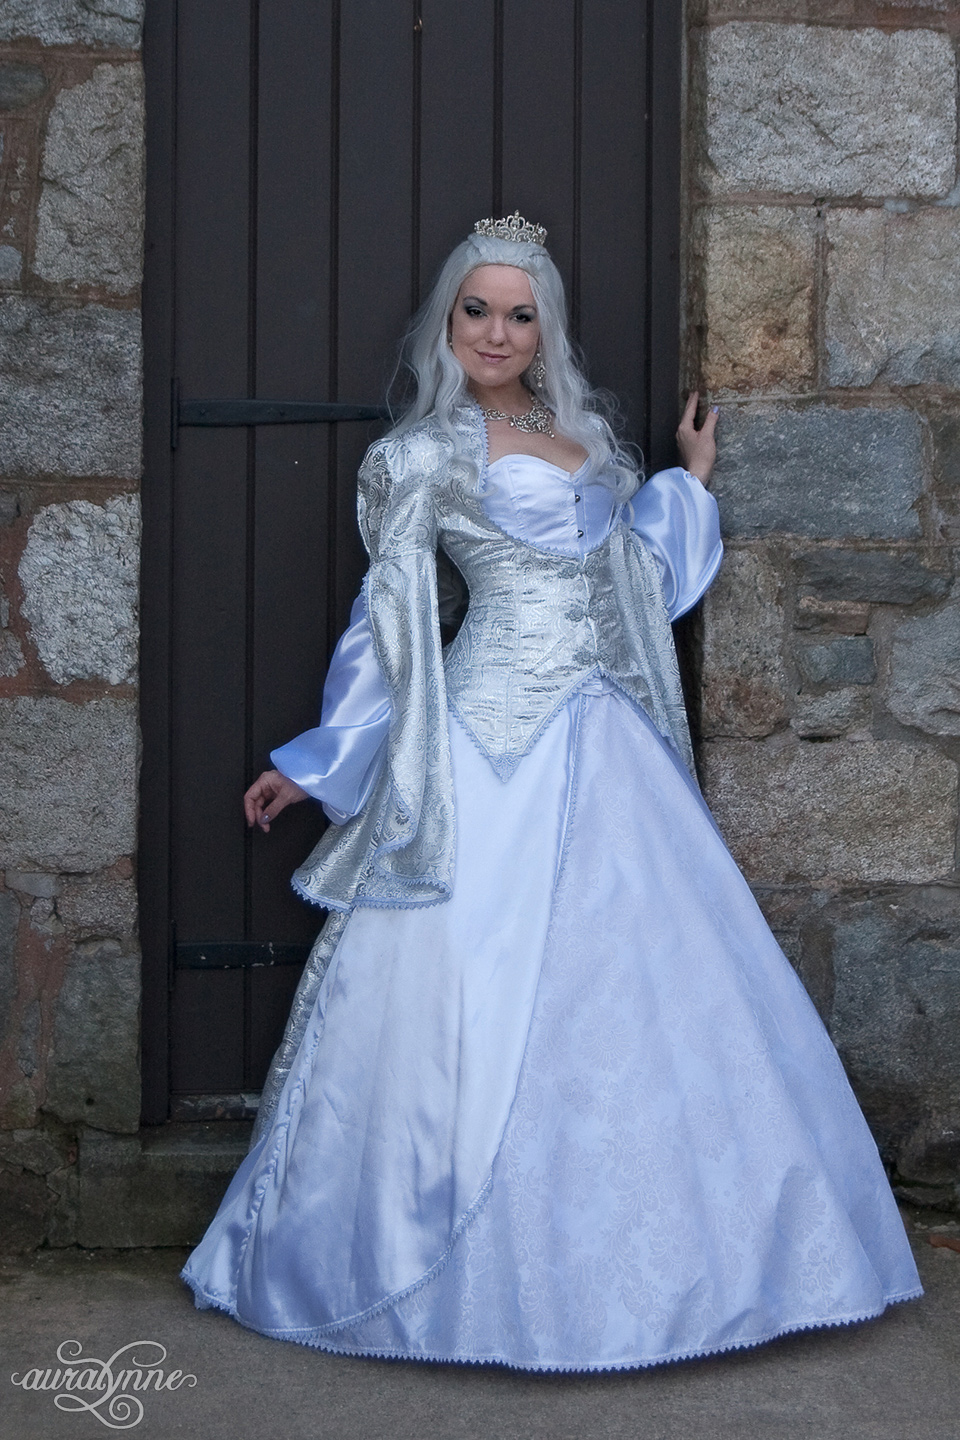 White Fantasy Queen Costume Front